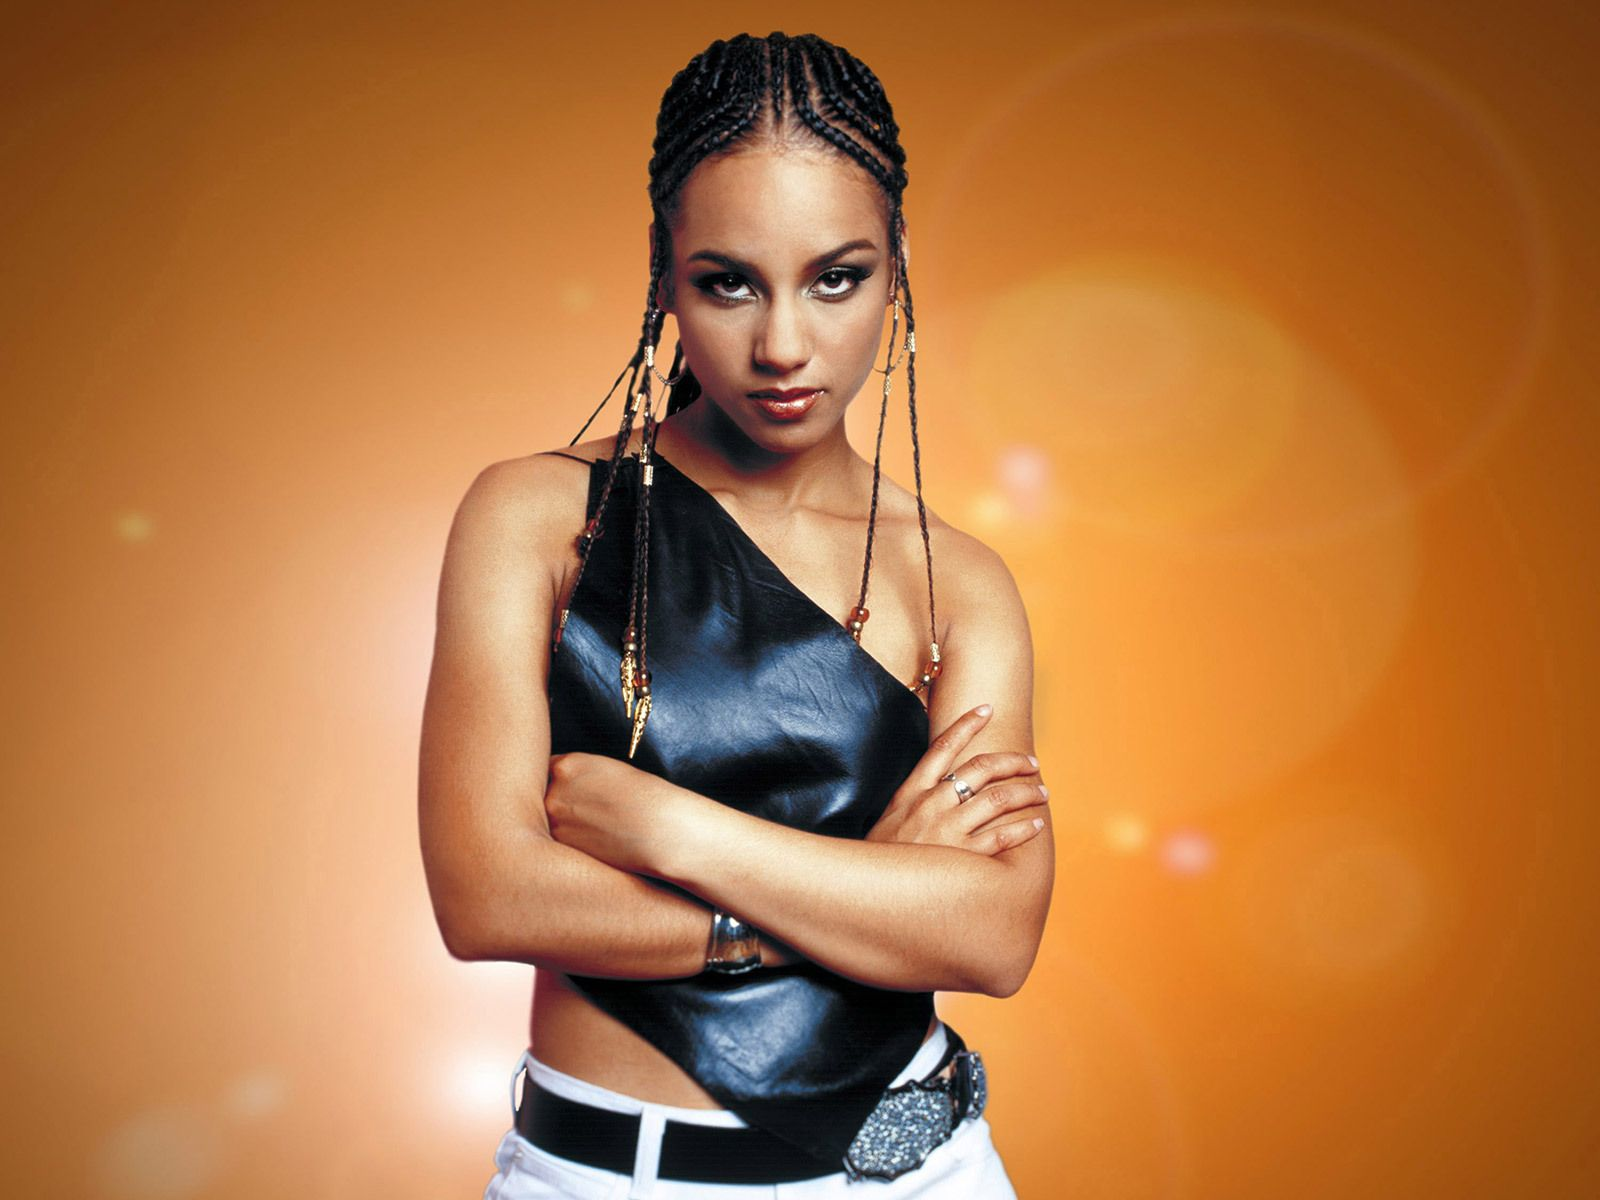 1600x1200 Alicia - Alicia Keys wallpaper (1244948) - fanpop